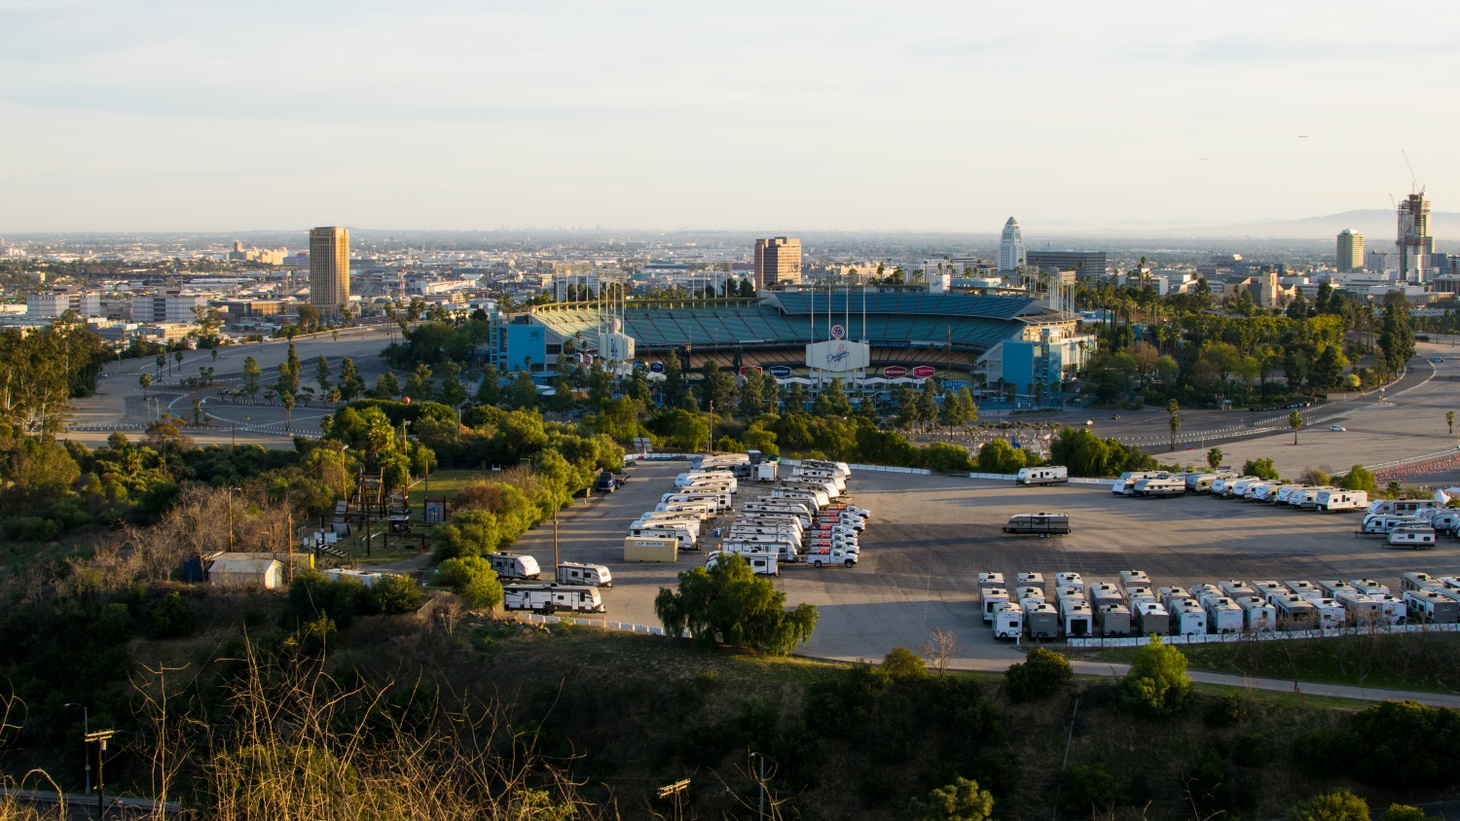 Dodger Stadium's COVID-19 vaccination site on the second day of its closure due to dose shortages, February 14, 2021. The site is expected to reopen on February 16, 2021.